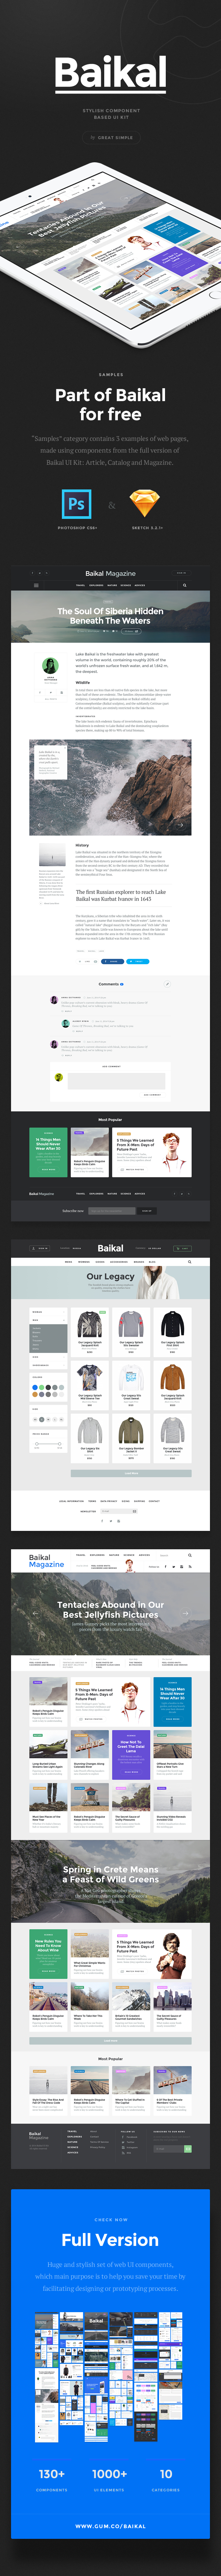 Baikal UI Kit: Samples